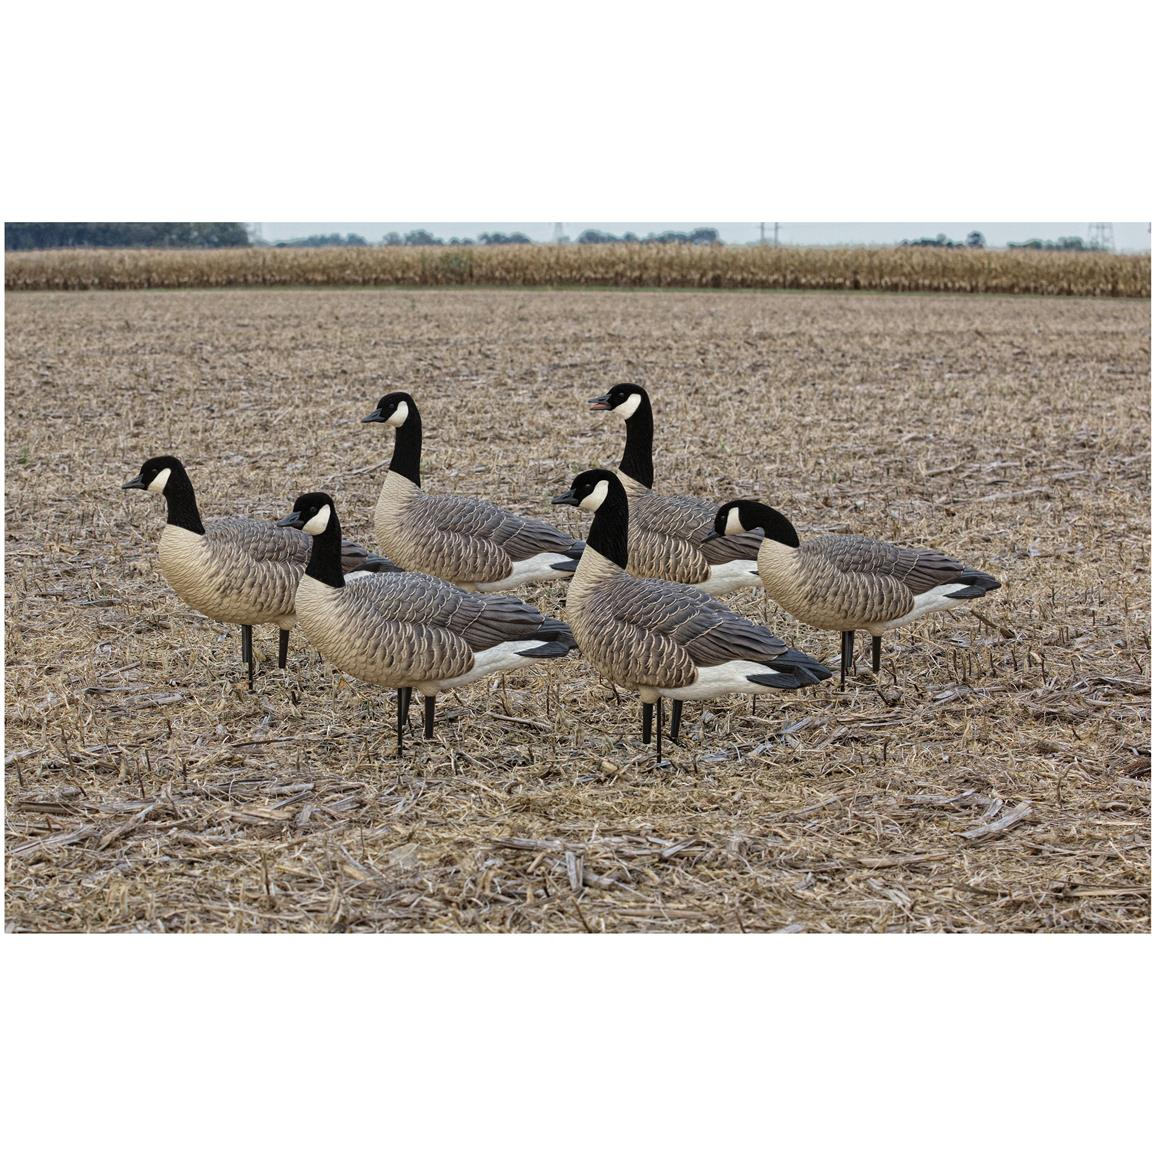 Avian-X Flocked Active Lesser Goose Decoys, 6 Pack